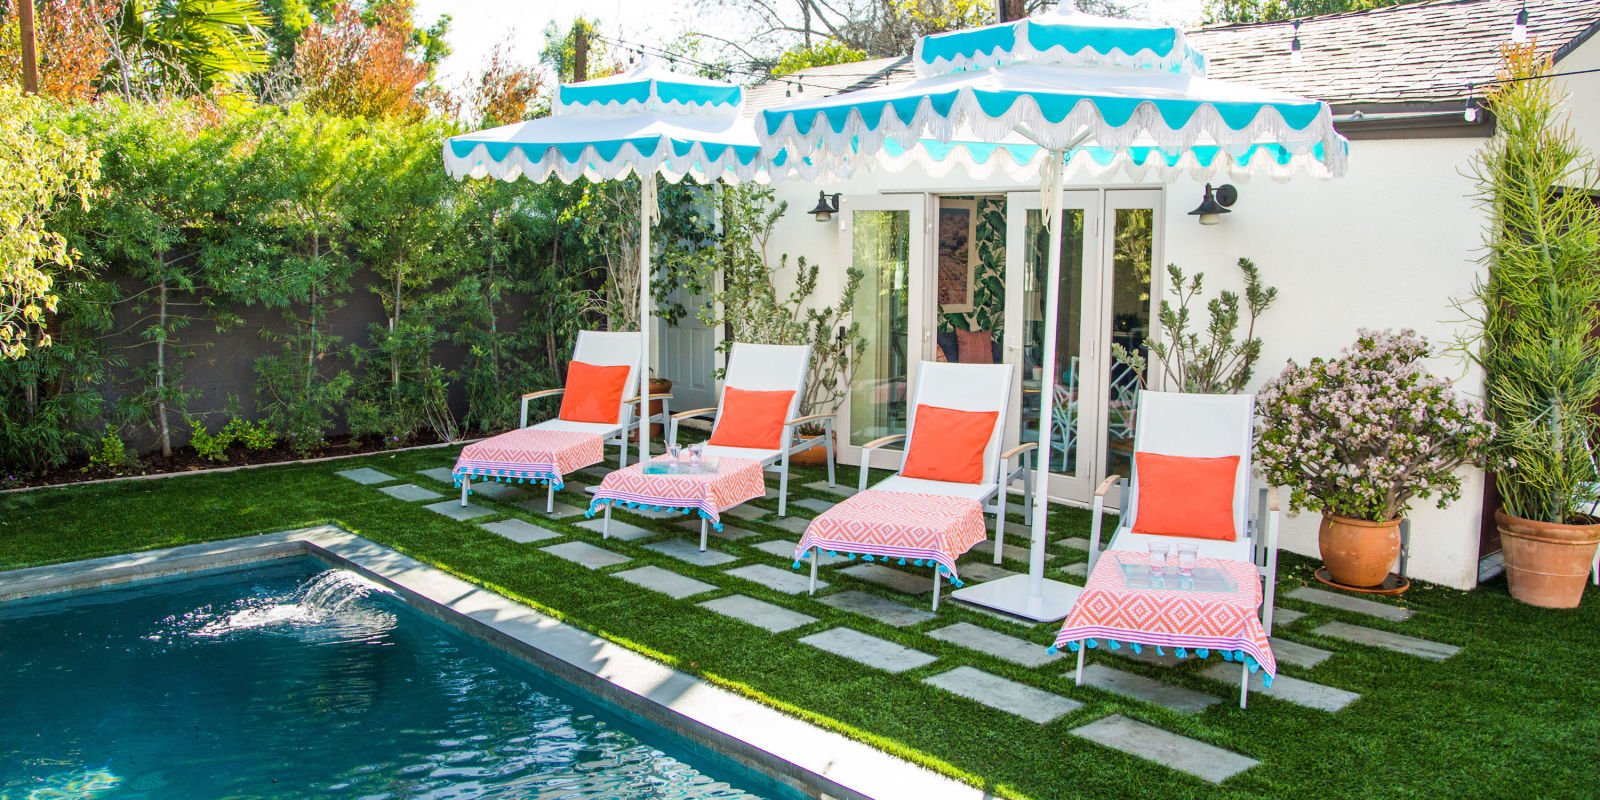 20 Best Patio And Porch Design Ideas Decorating Your